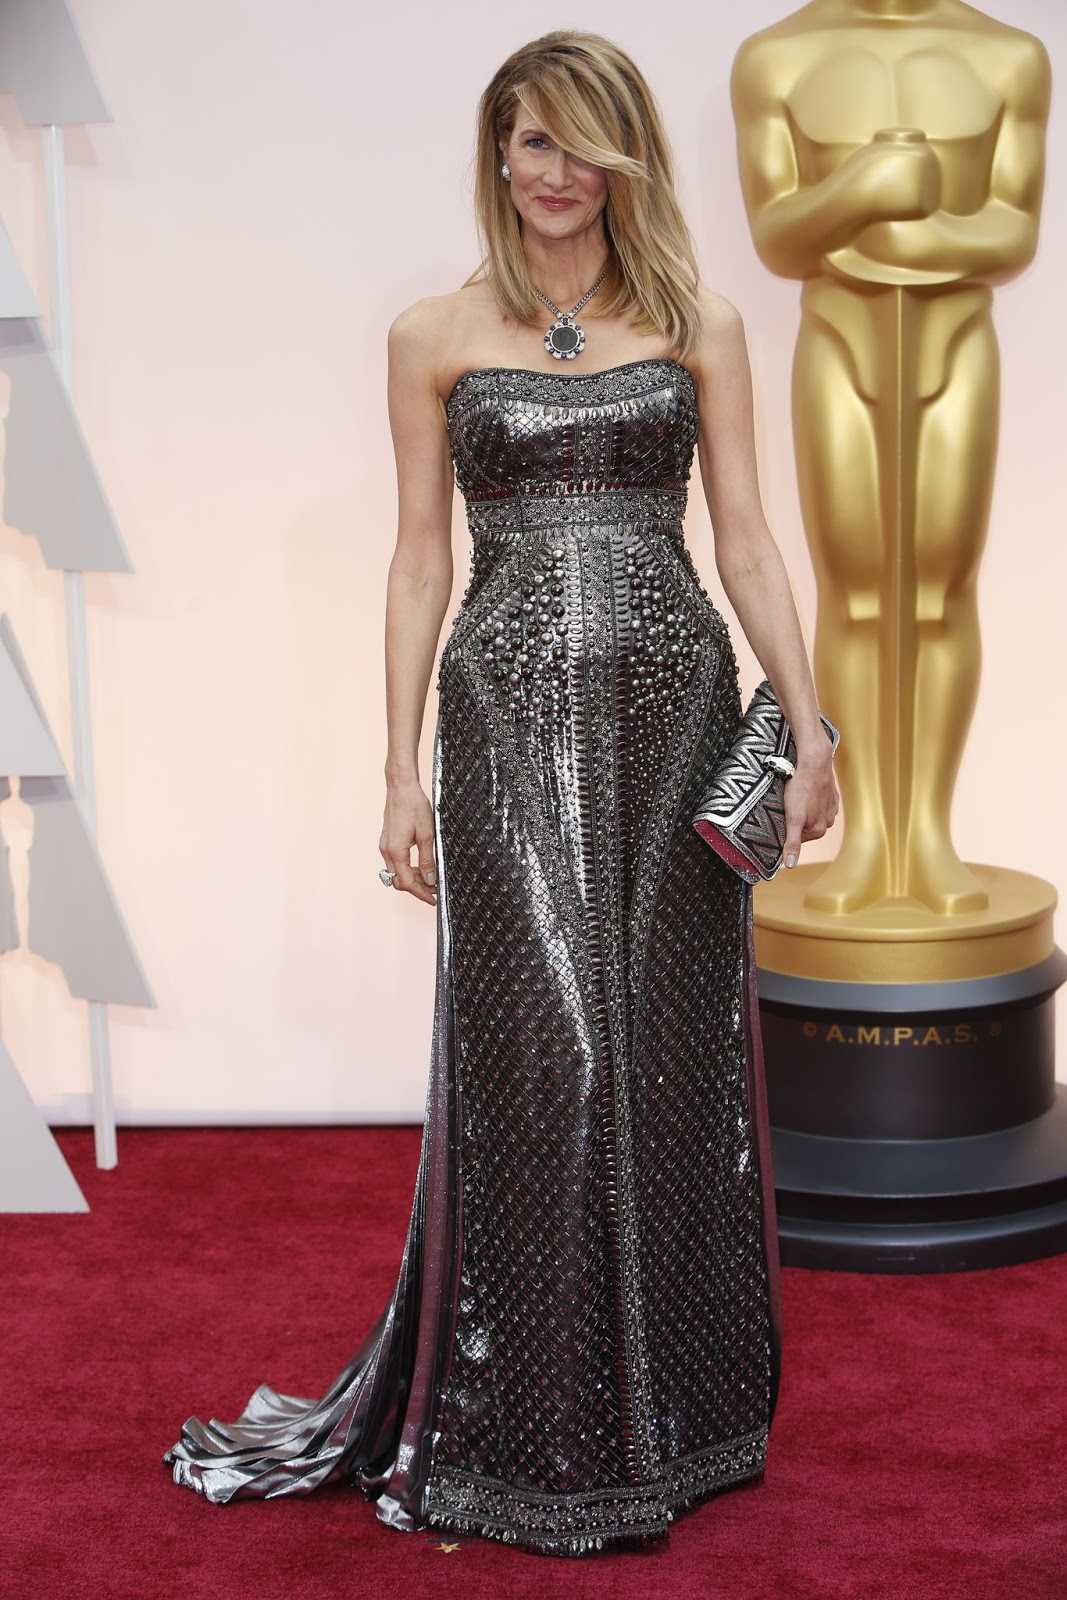 Laura Dern in Alberta Ferretti at the Oscars 2015